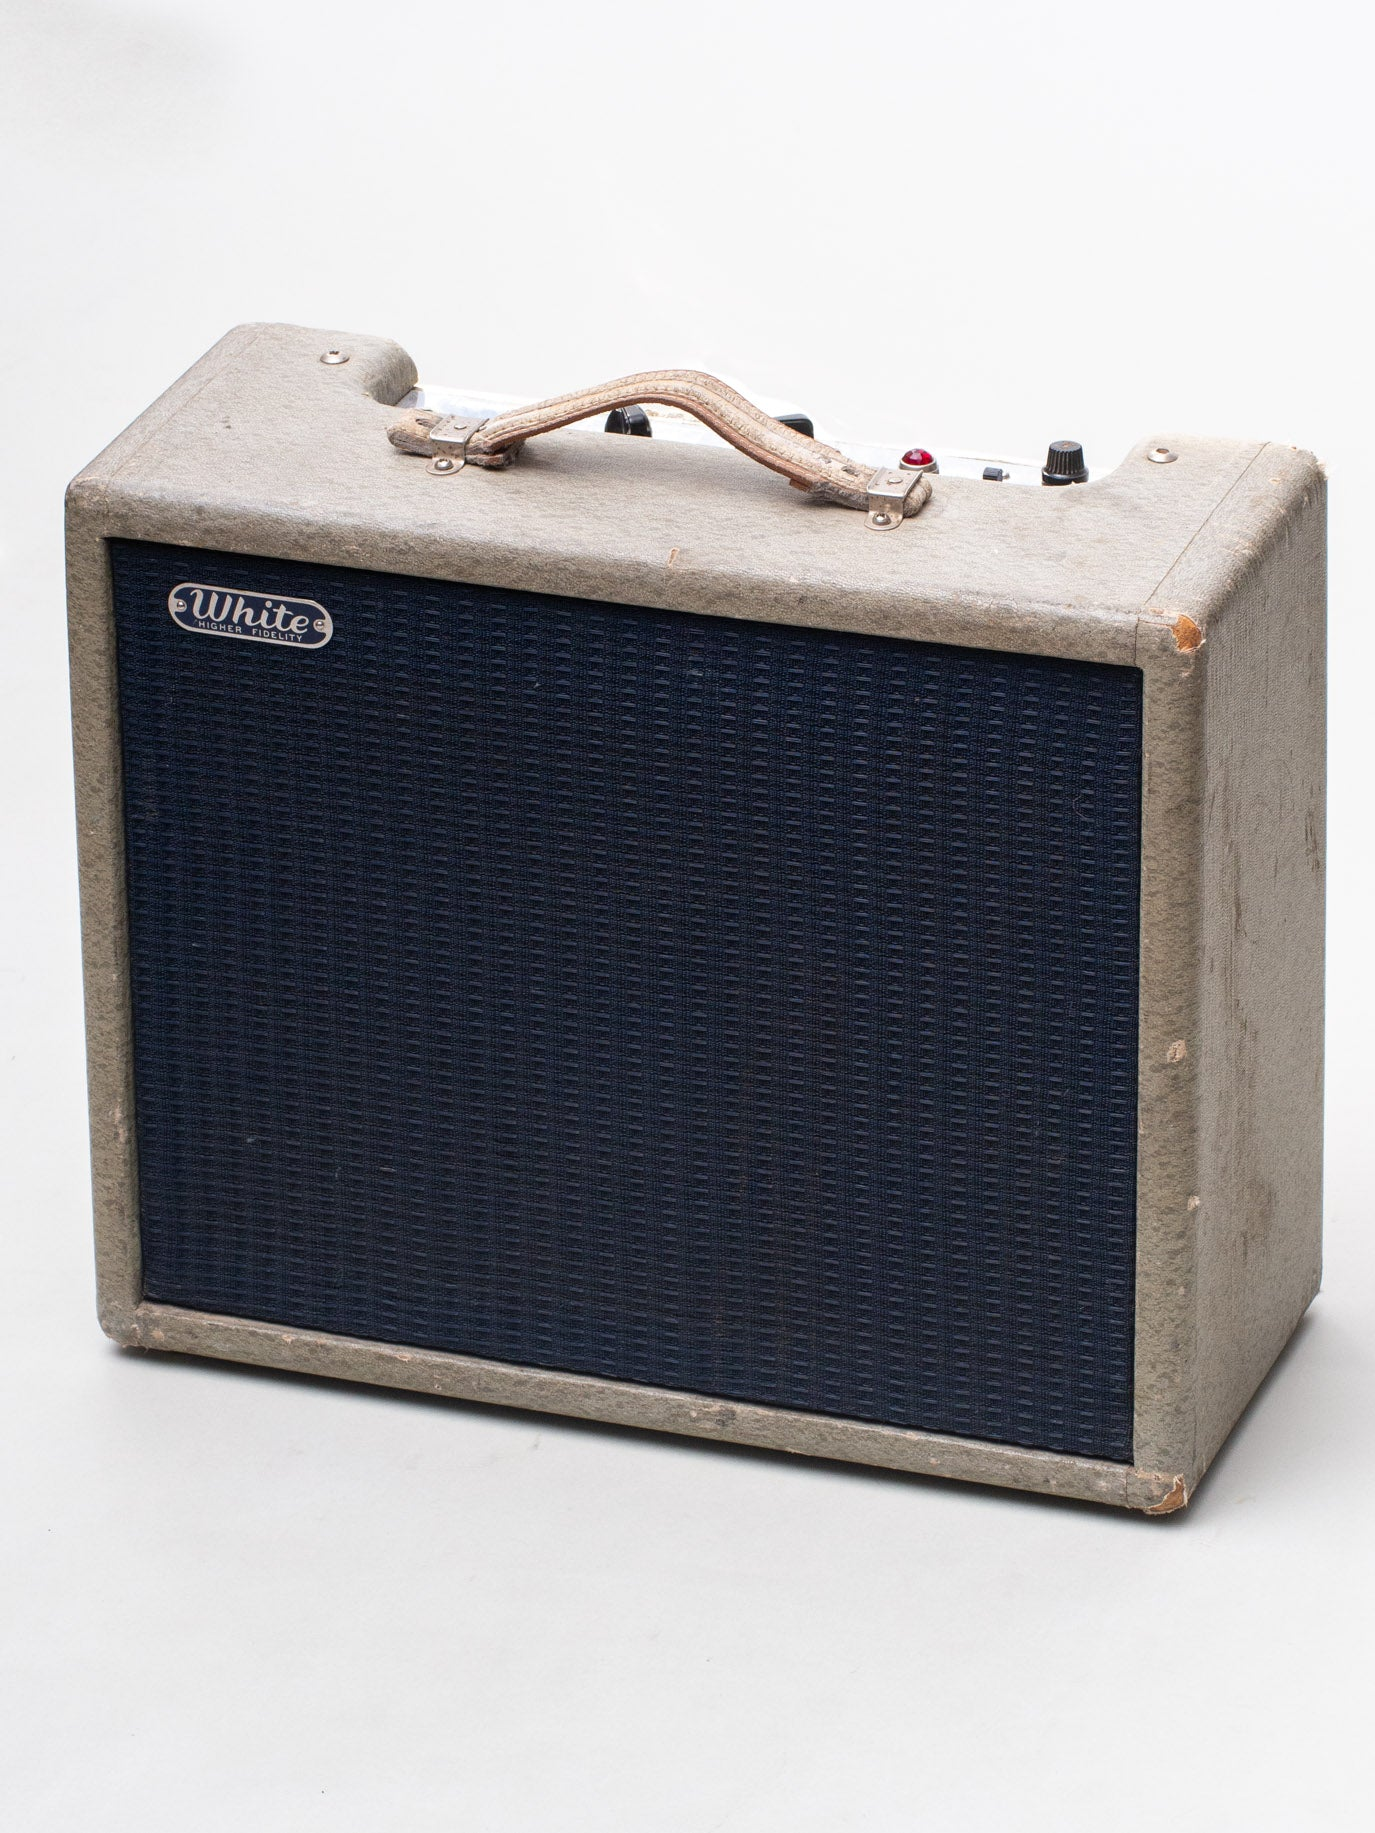 1962 Fender White Higher Fidelity Amplifier